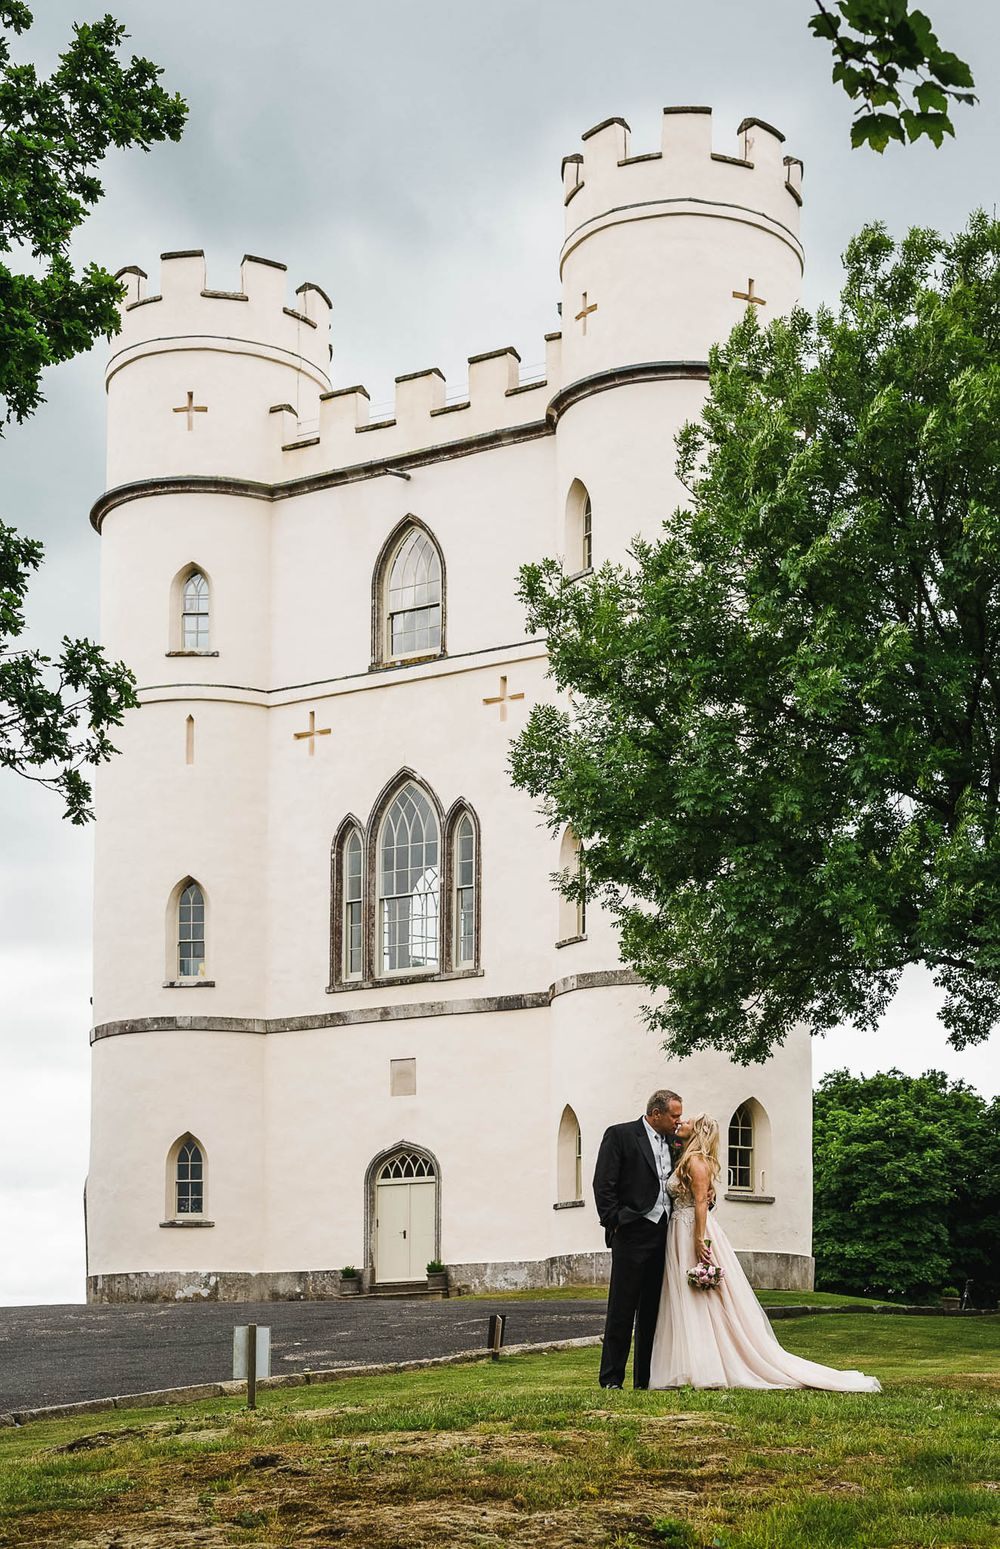 Elopement Photography Devon